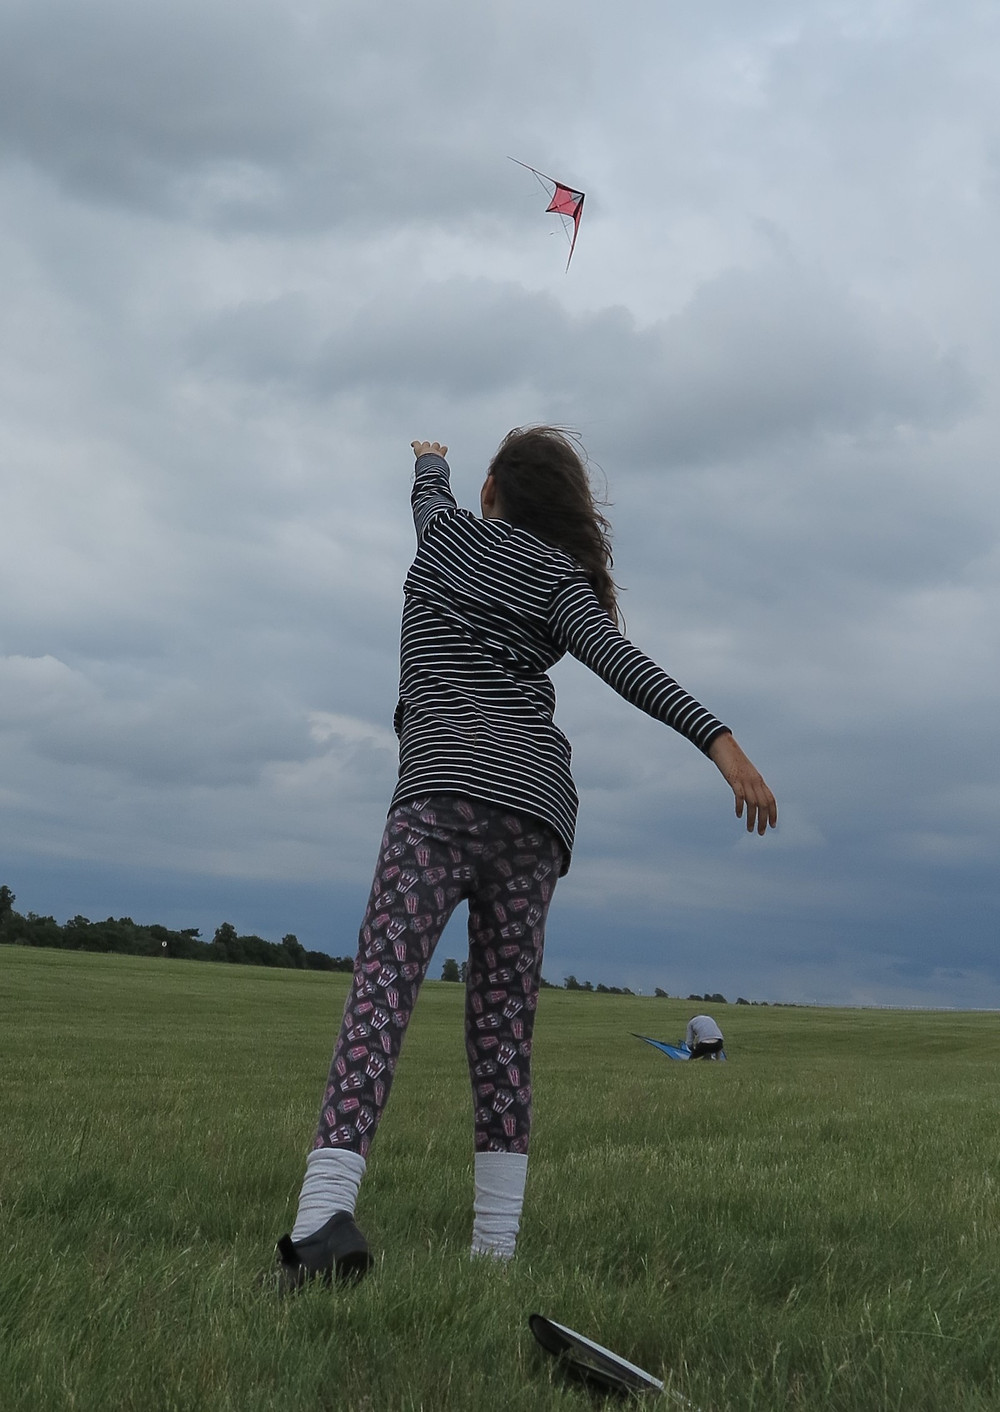 Bethany in action...having just thrown a kite up